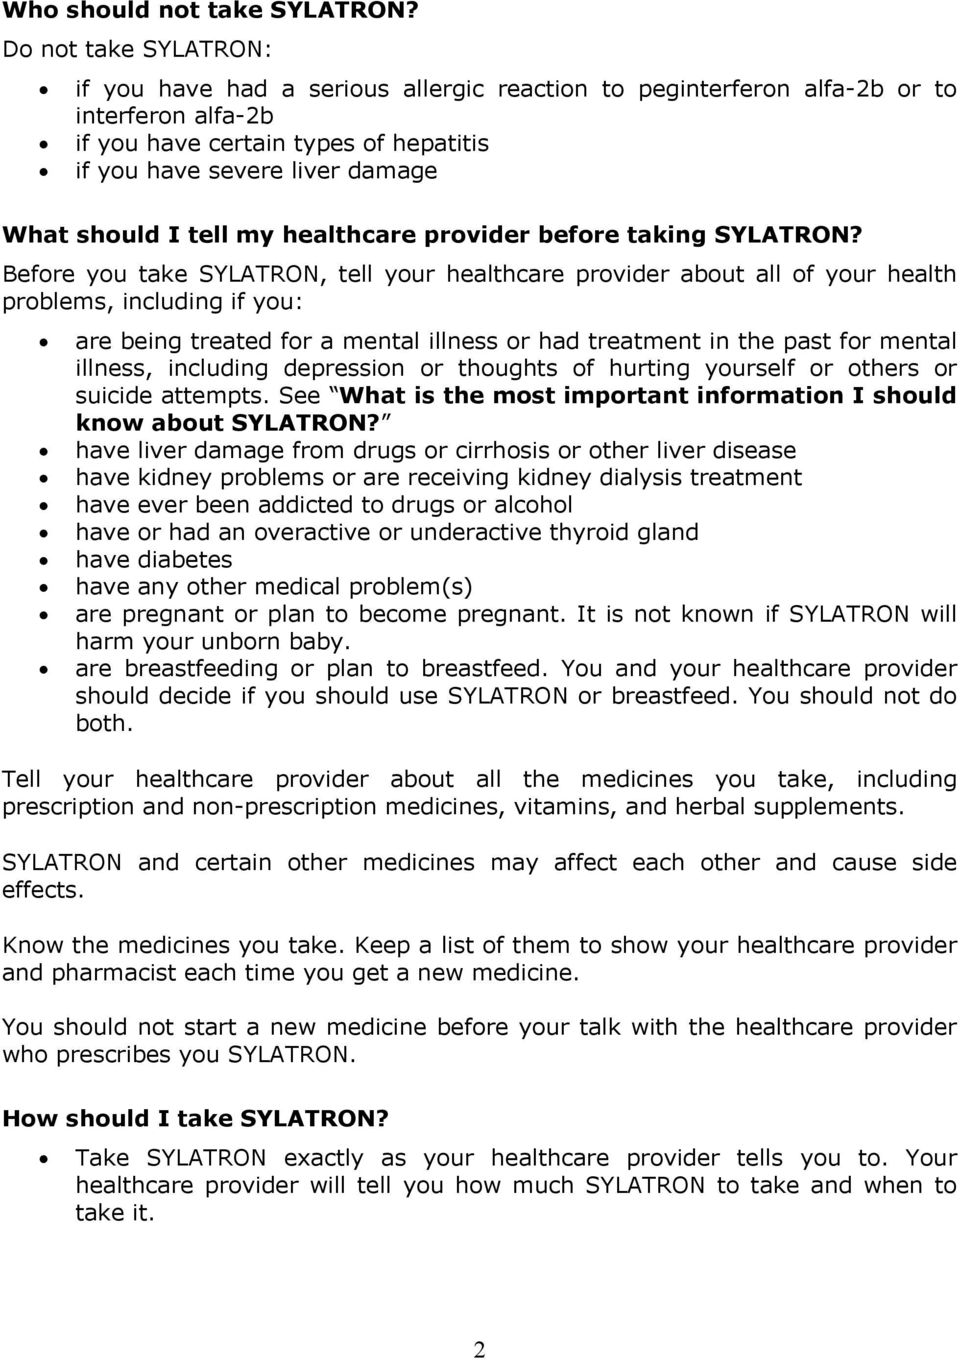 I tell my healthcare provider before taking SYLATRON?